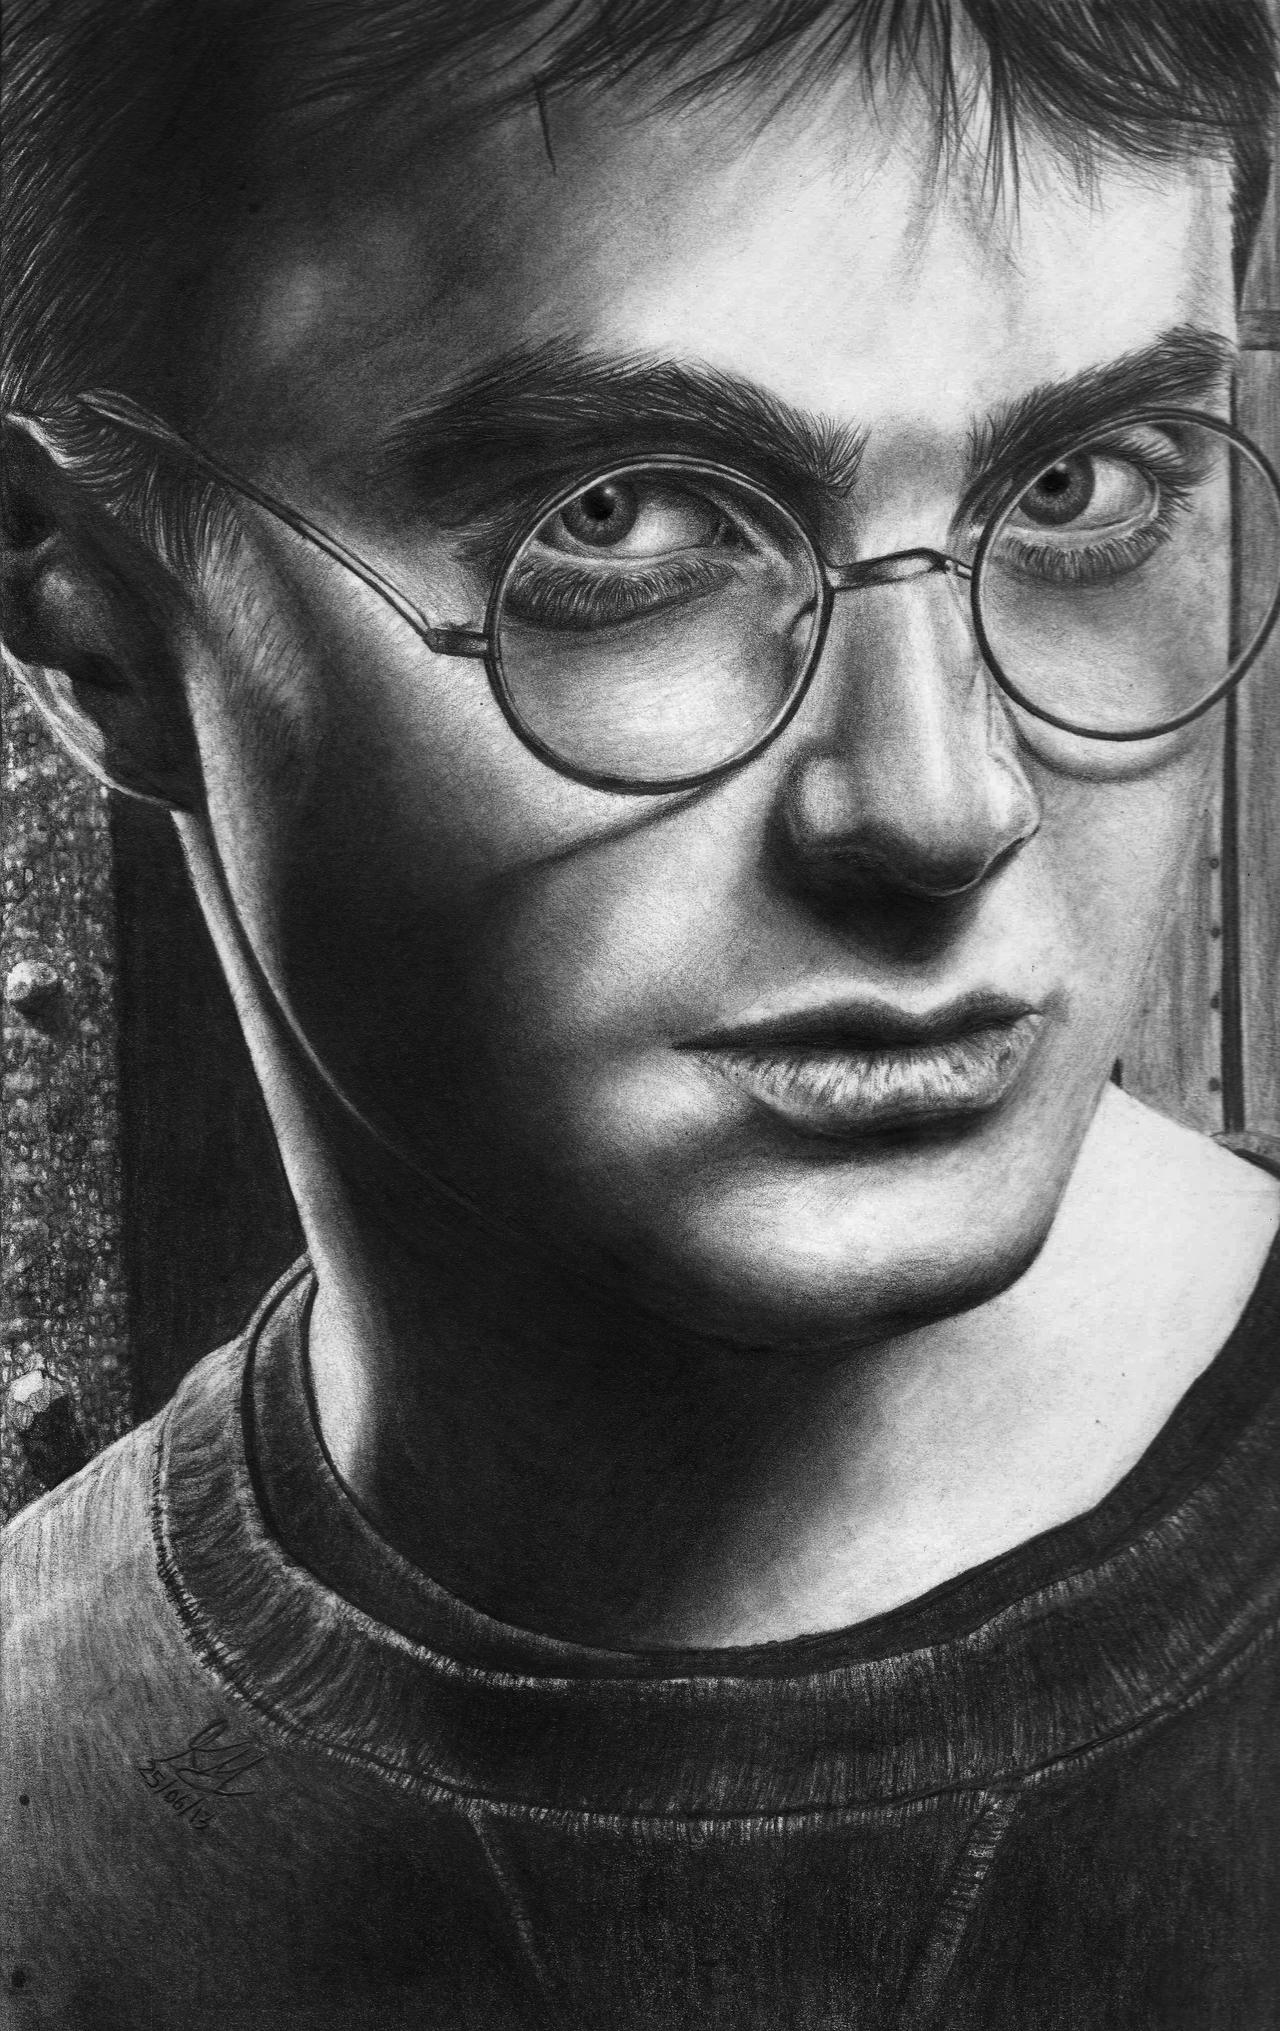 Harry Potter by PopoKarimz on DeviantArt